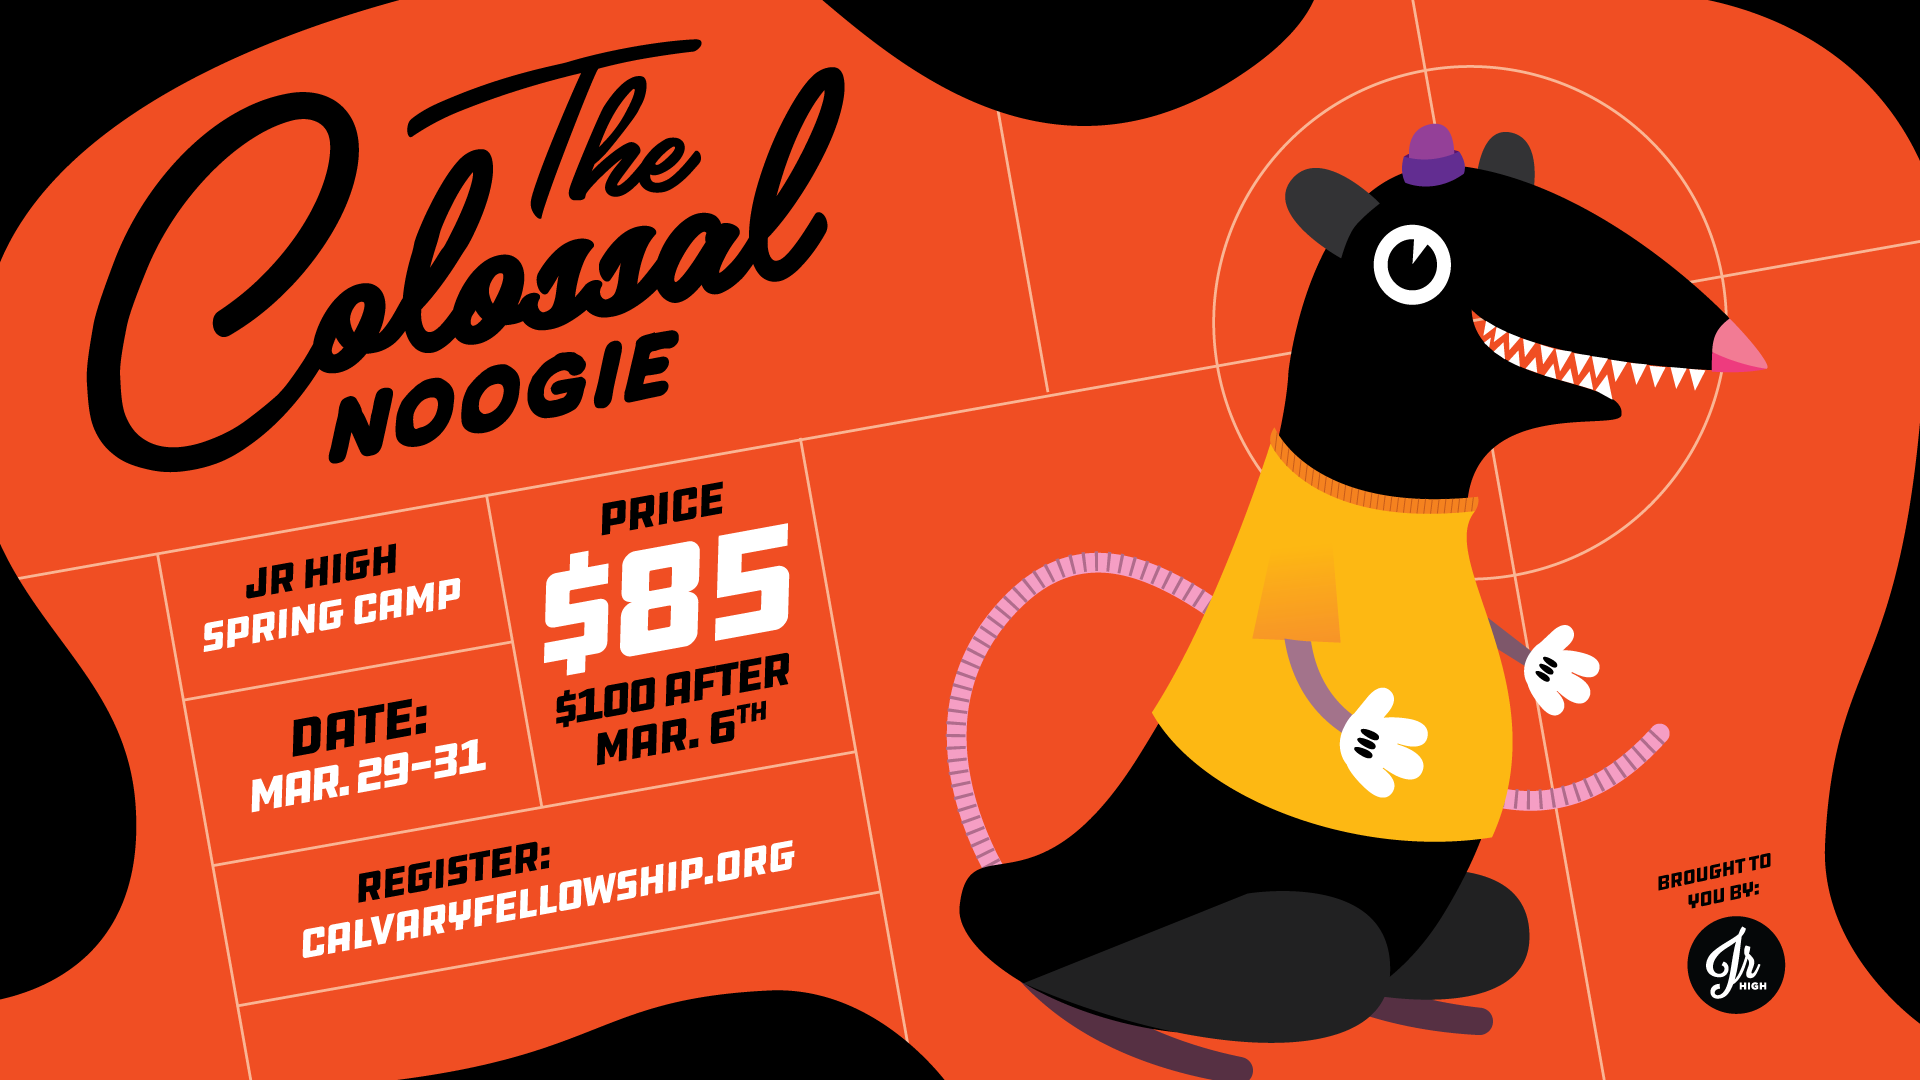 Colossal Noogie 2019 logo